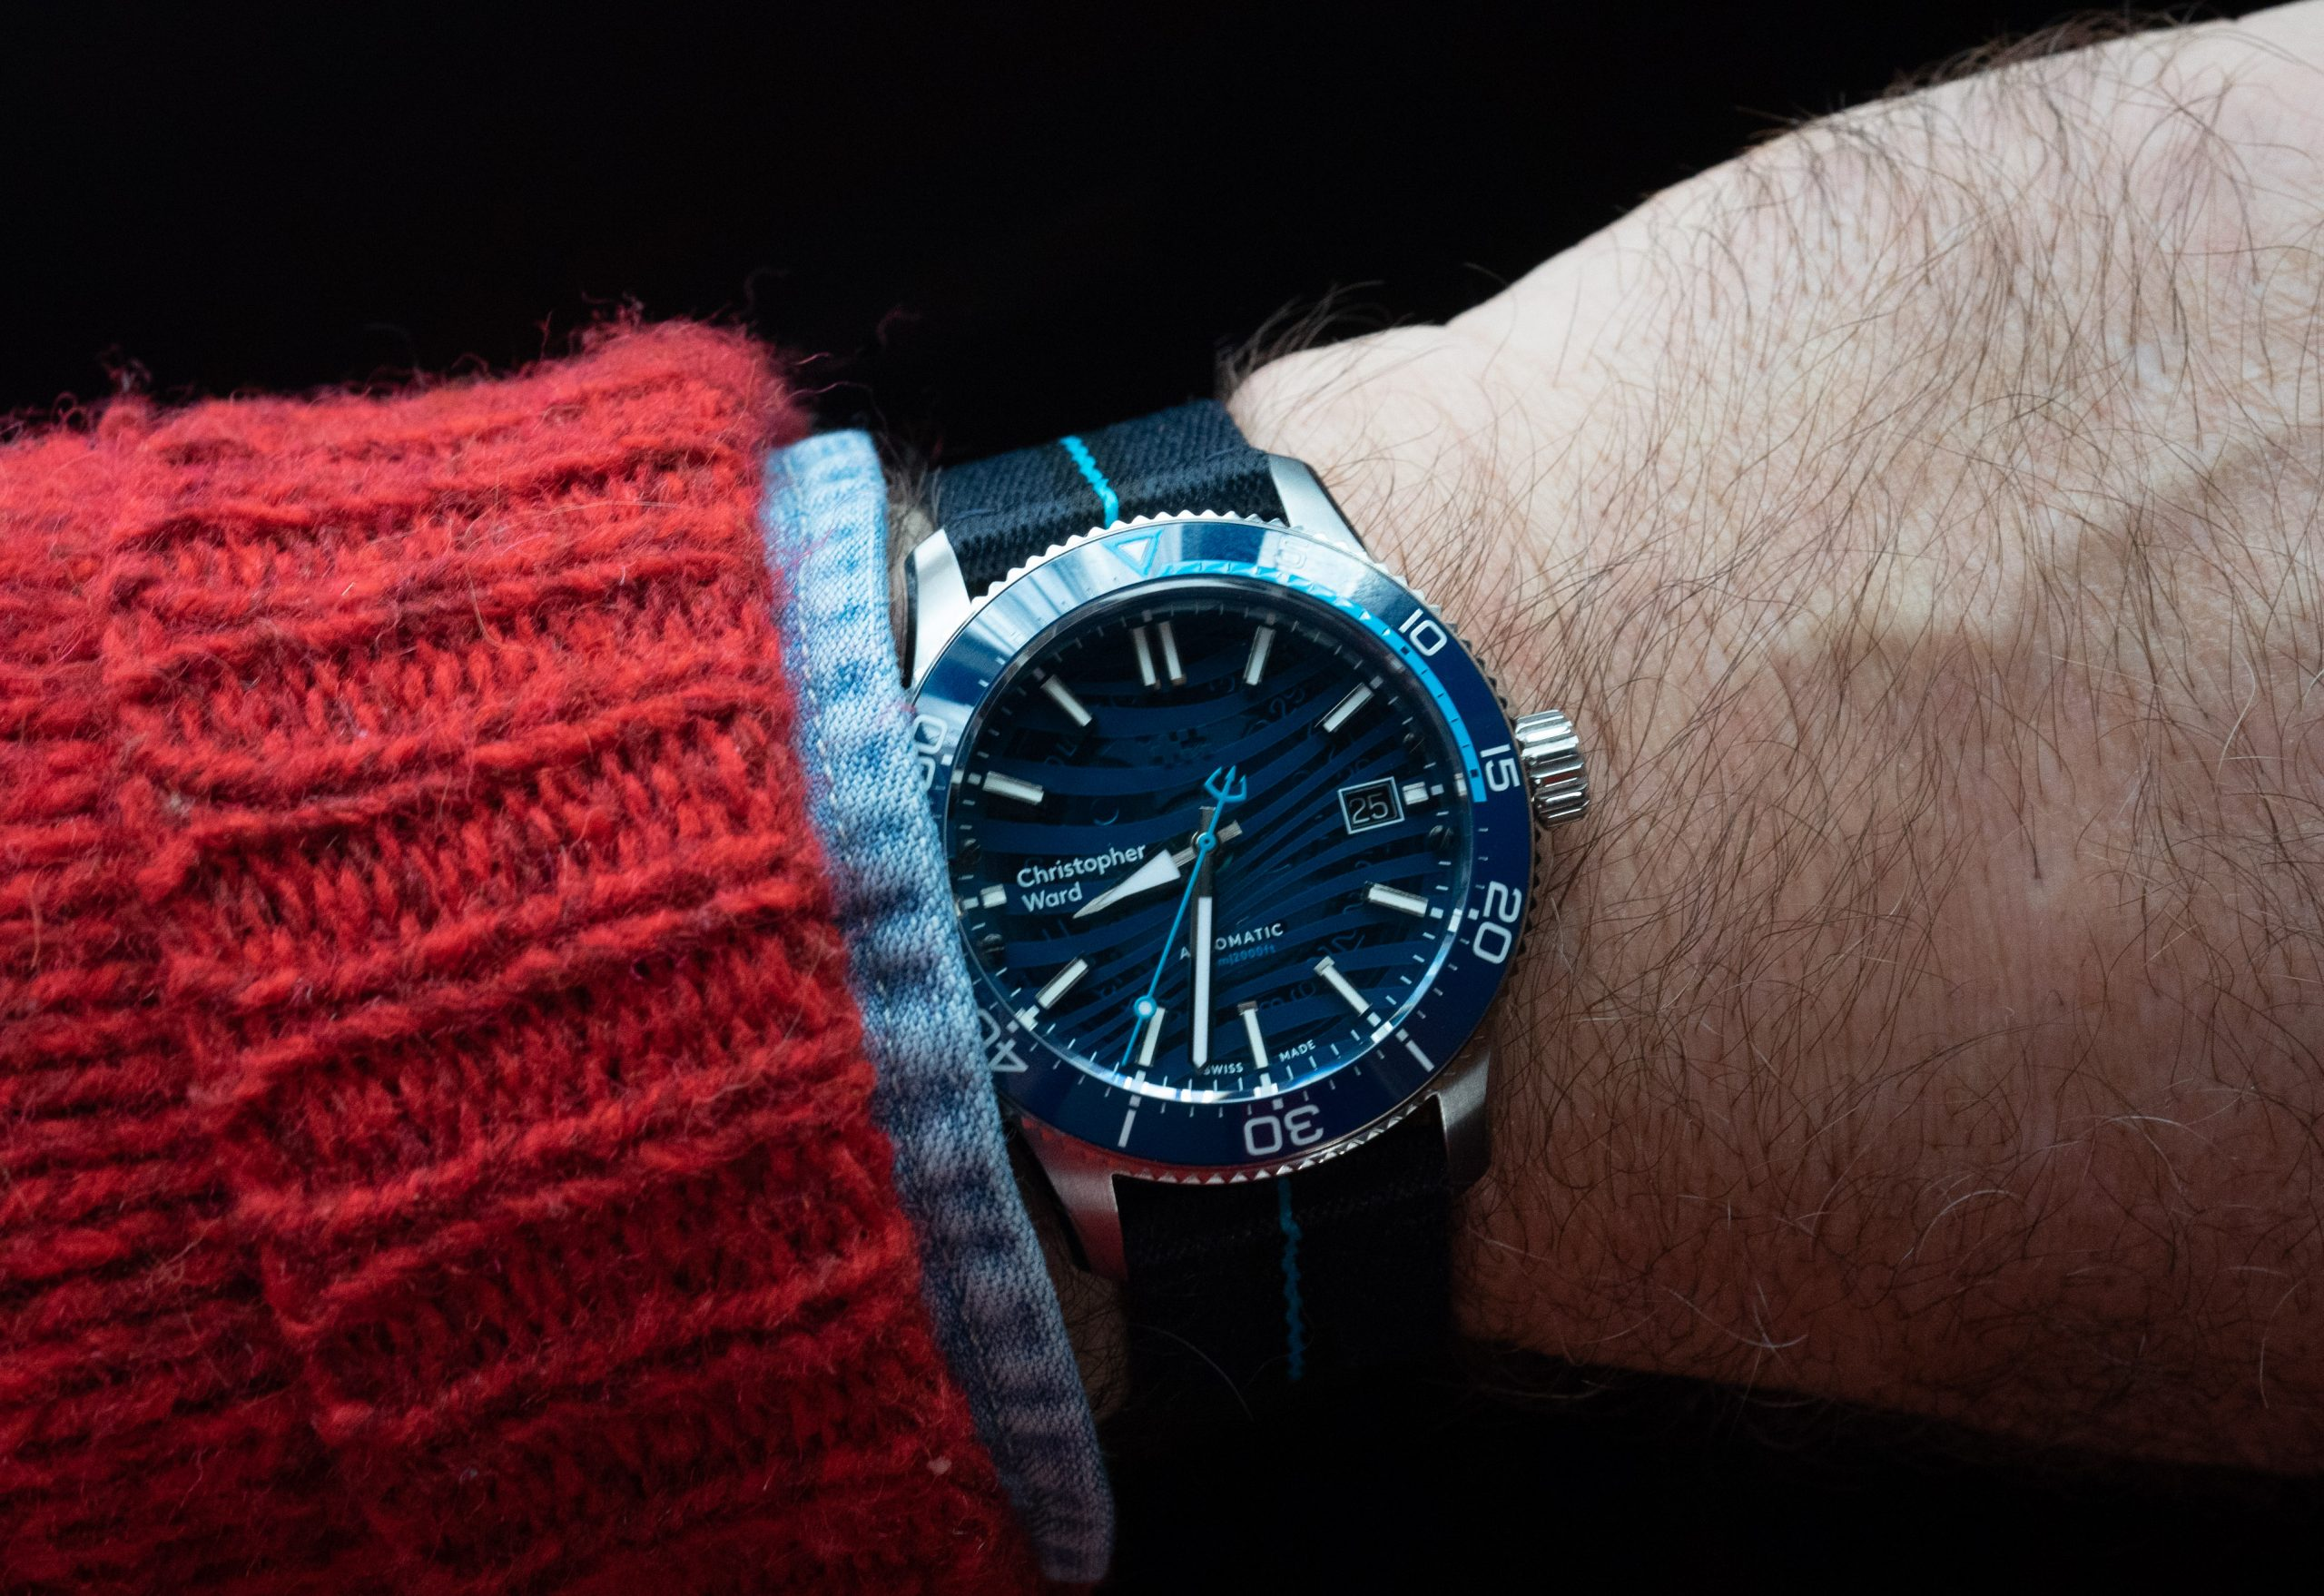 Hands-On Review – Christopher Ward C60 BLUE Limited Edition Dive Watch